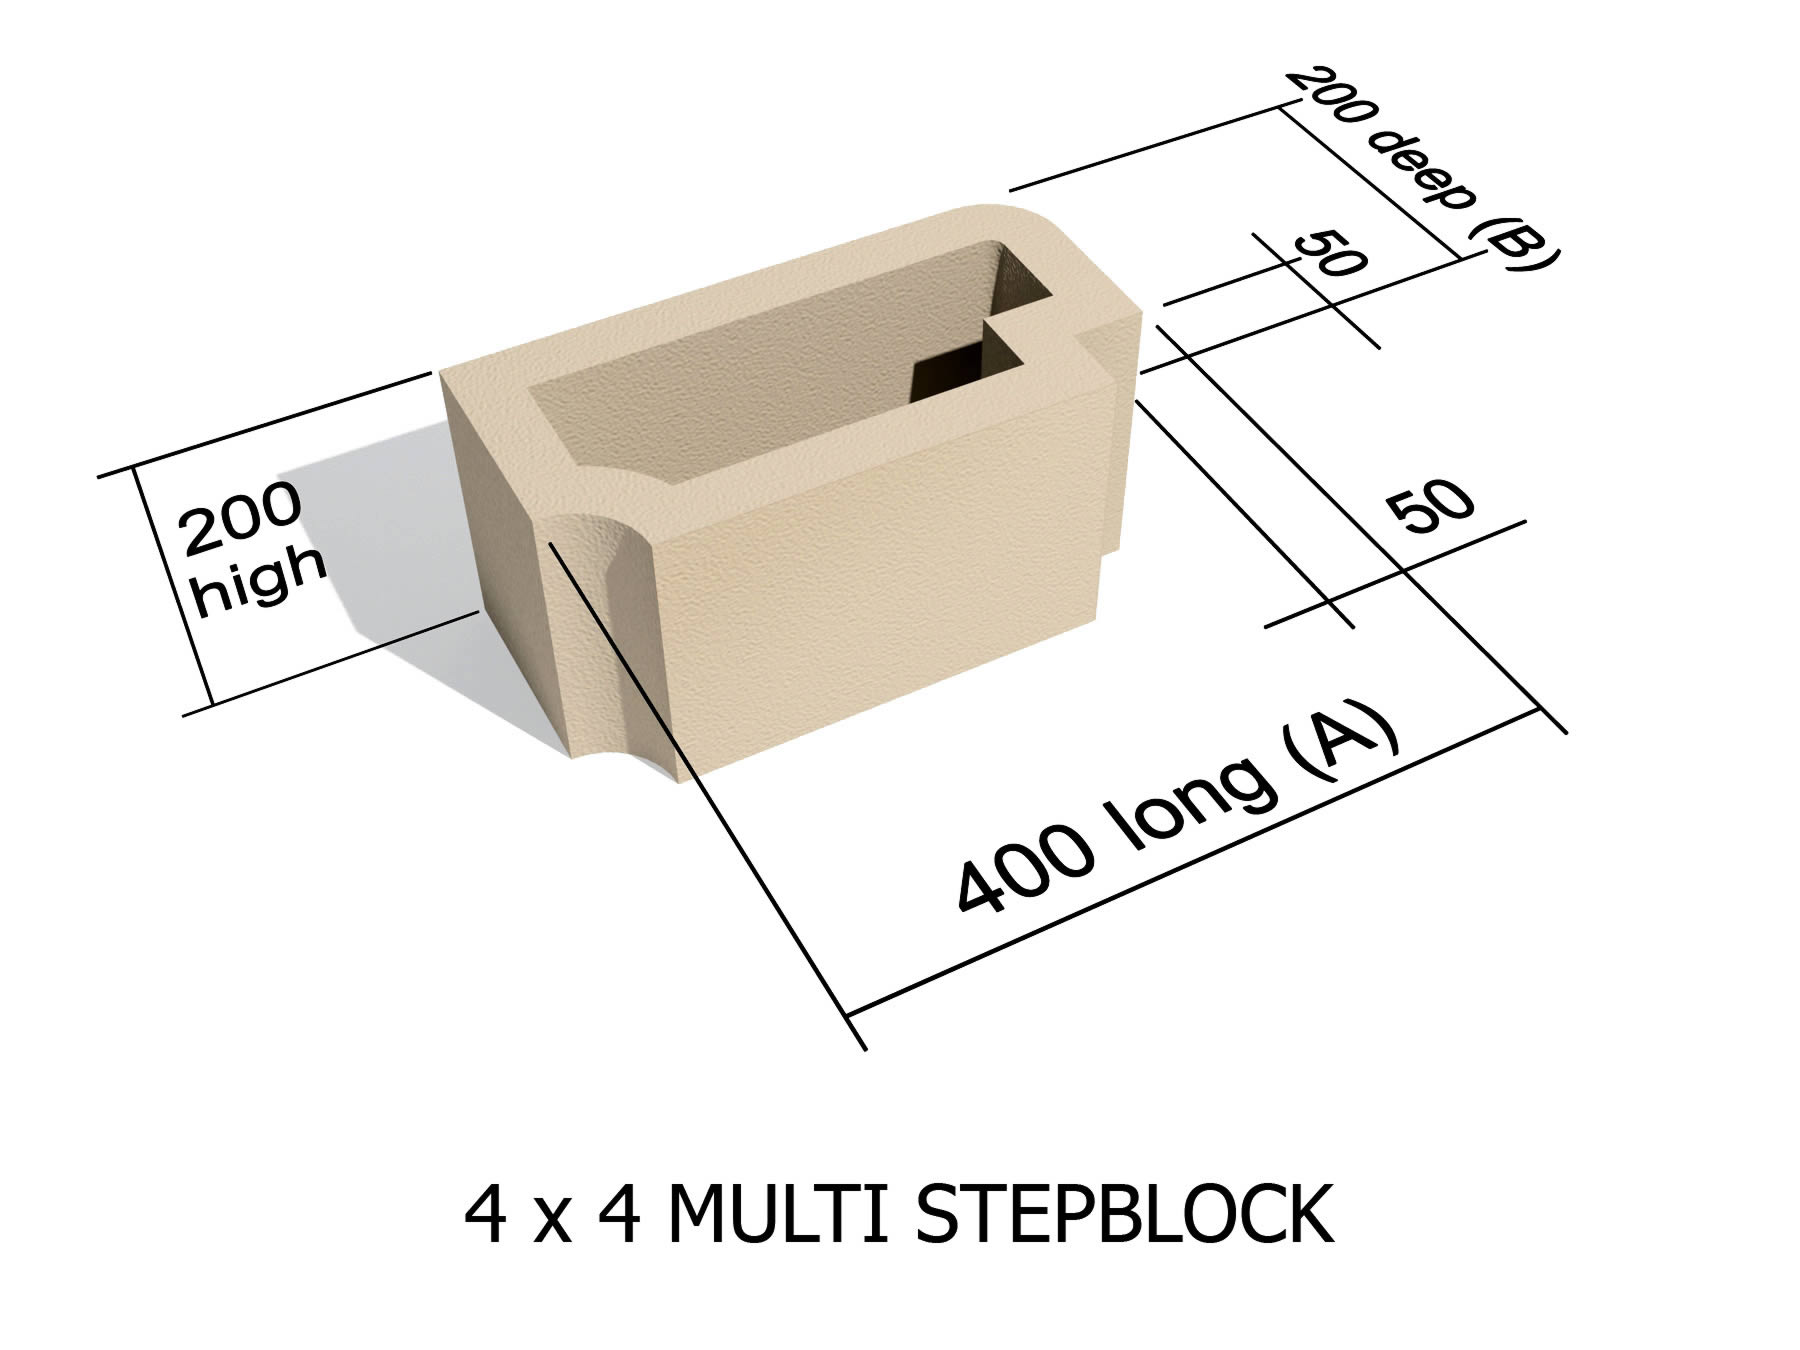 4 x 4 Multi Step block